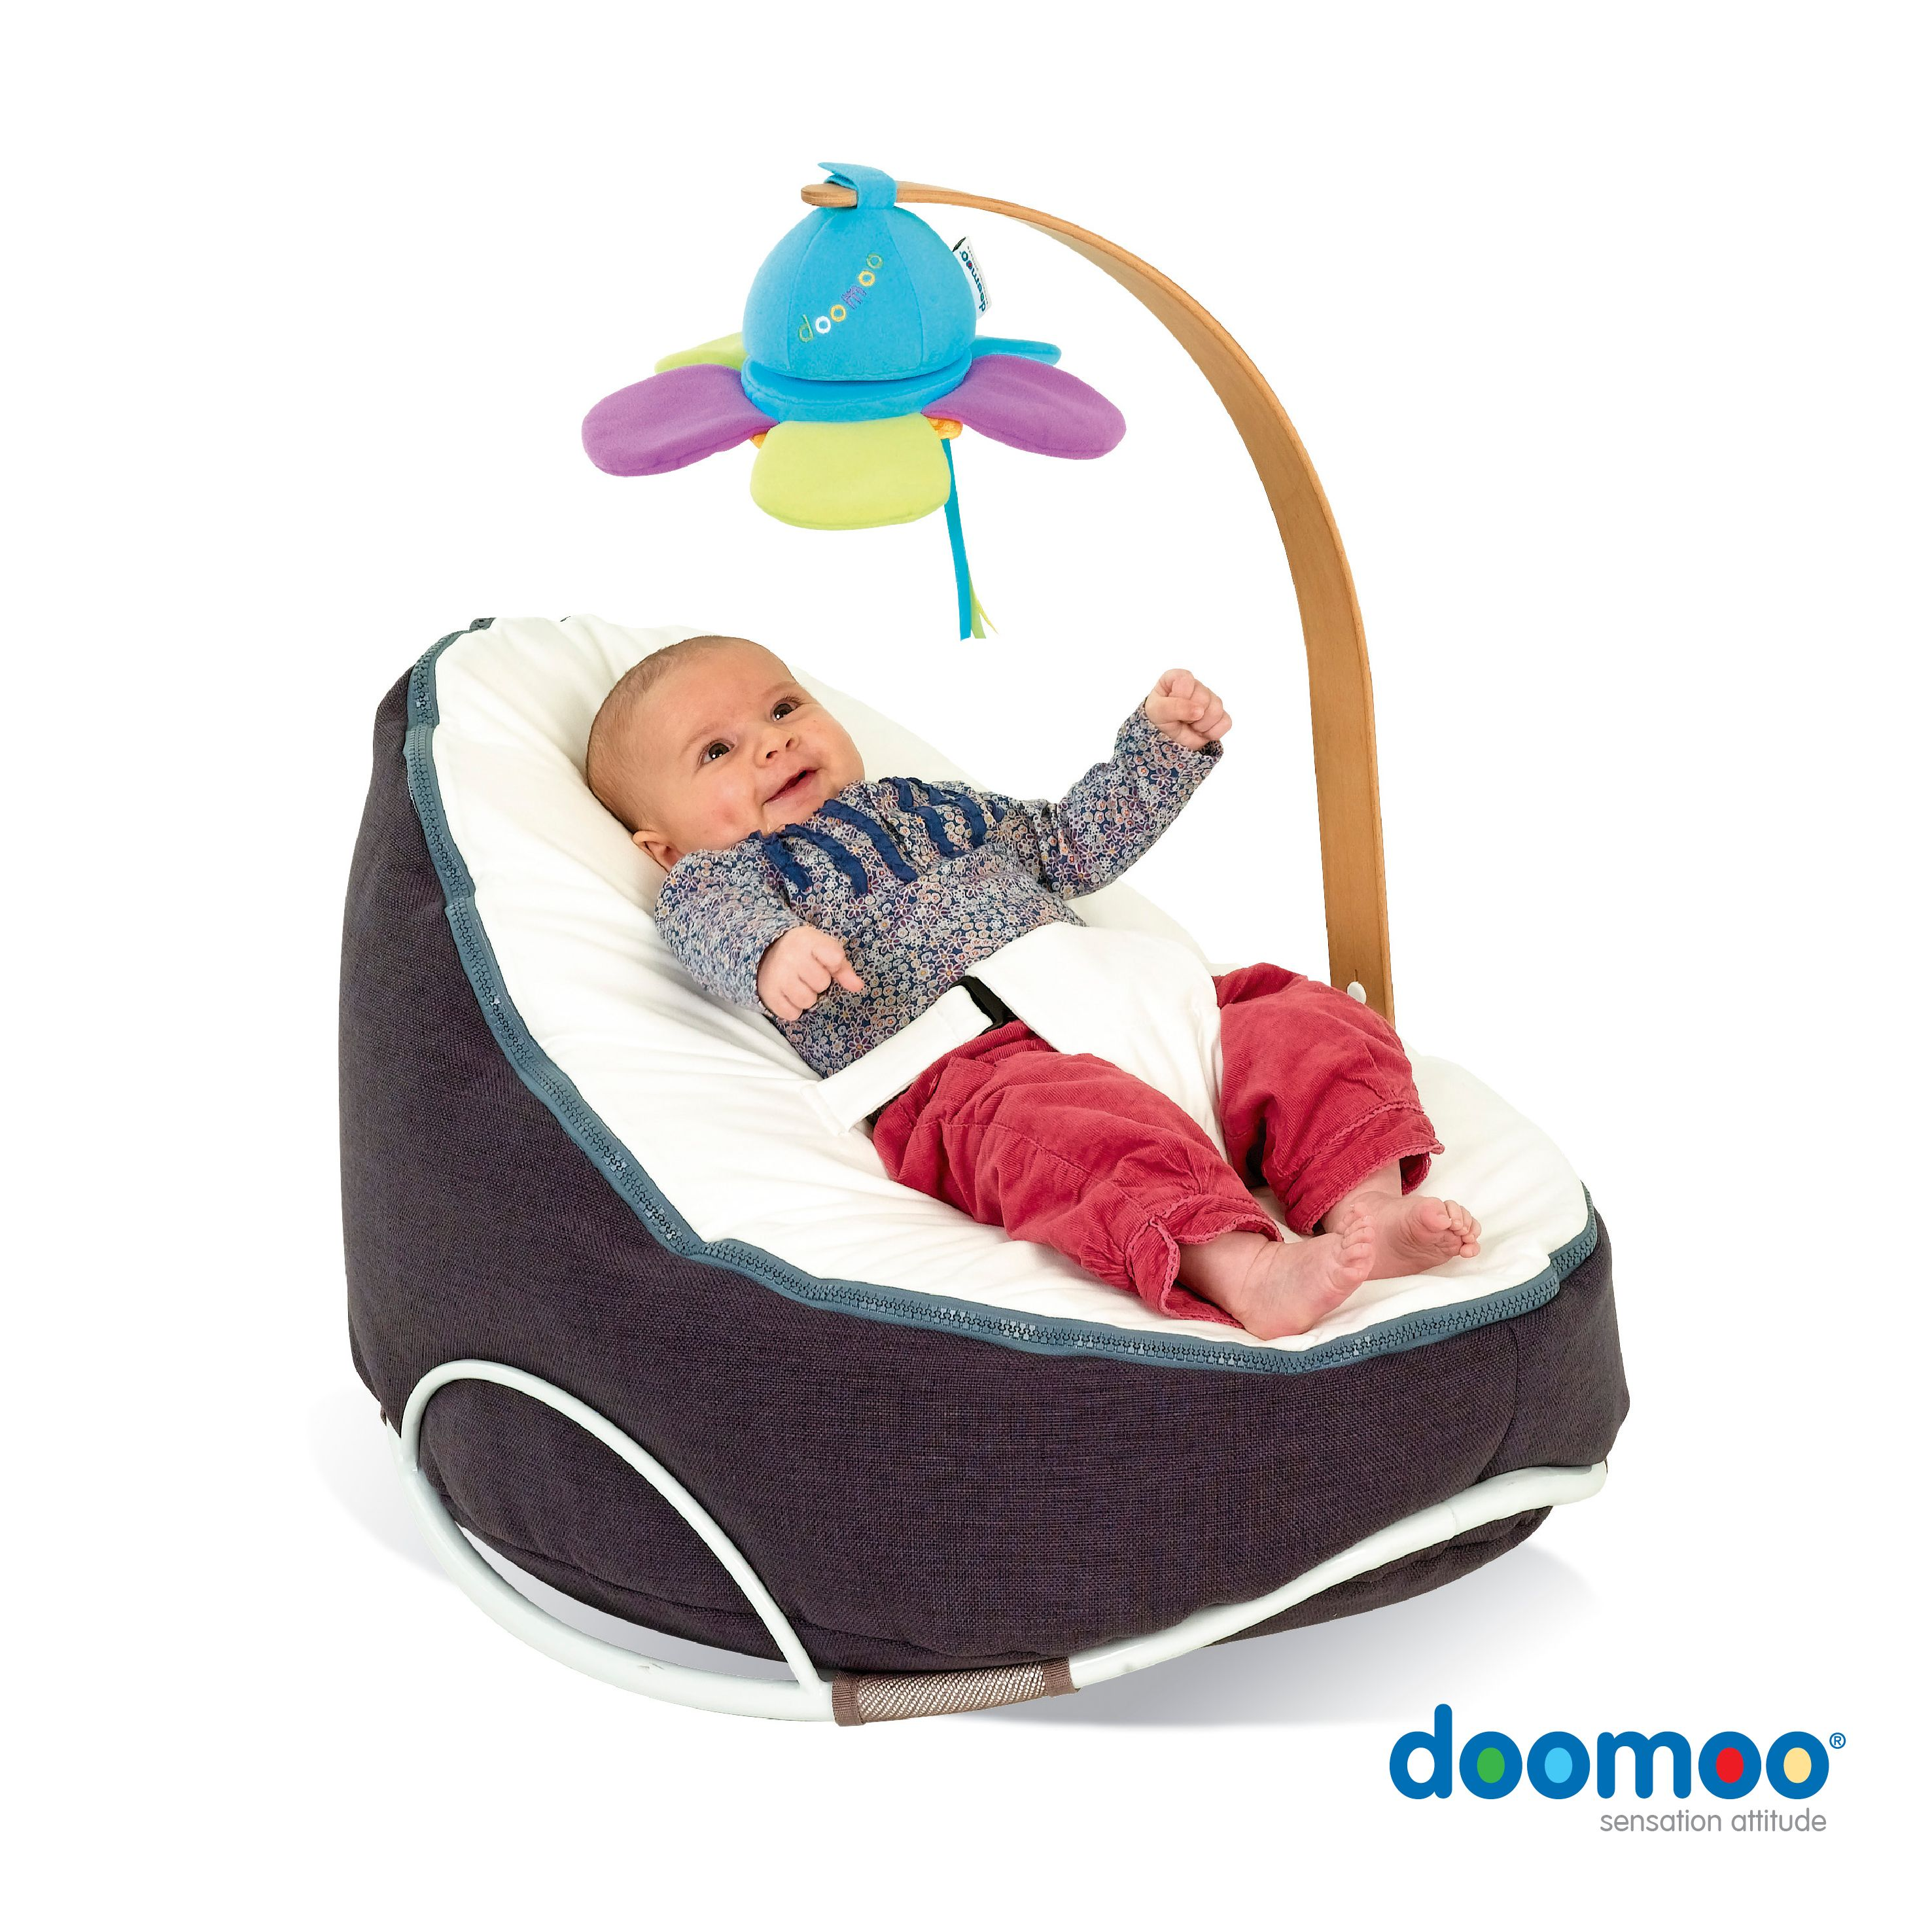 doomoo seat Home Grey White with Arch Swing